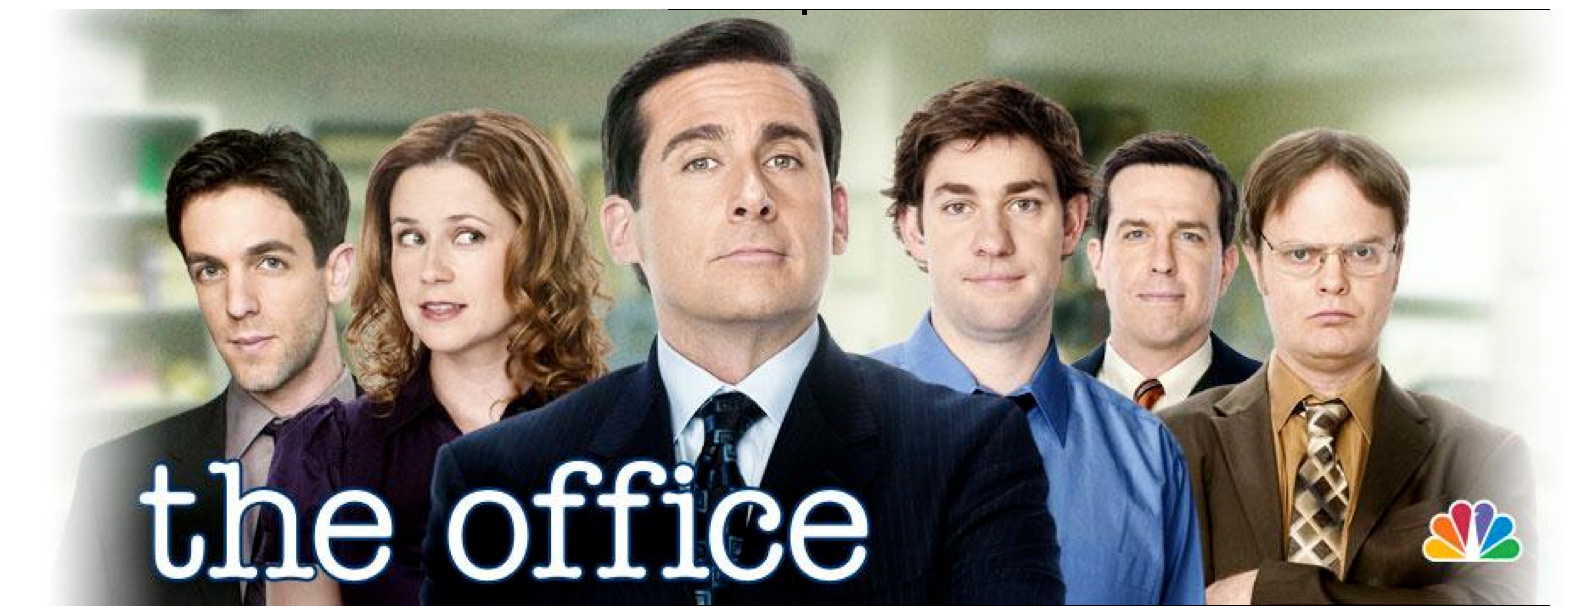 Interview Tips From Nbc S The Office Cmaccessboston S Blog